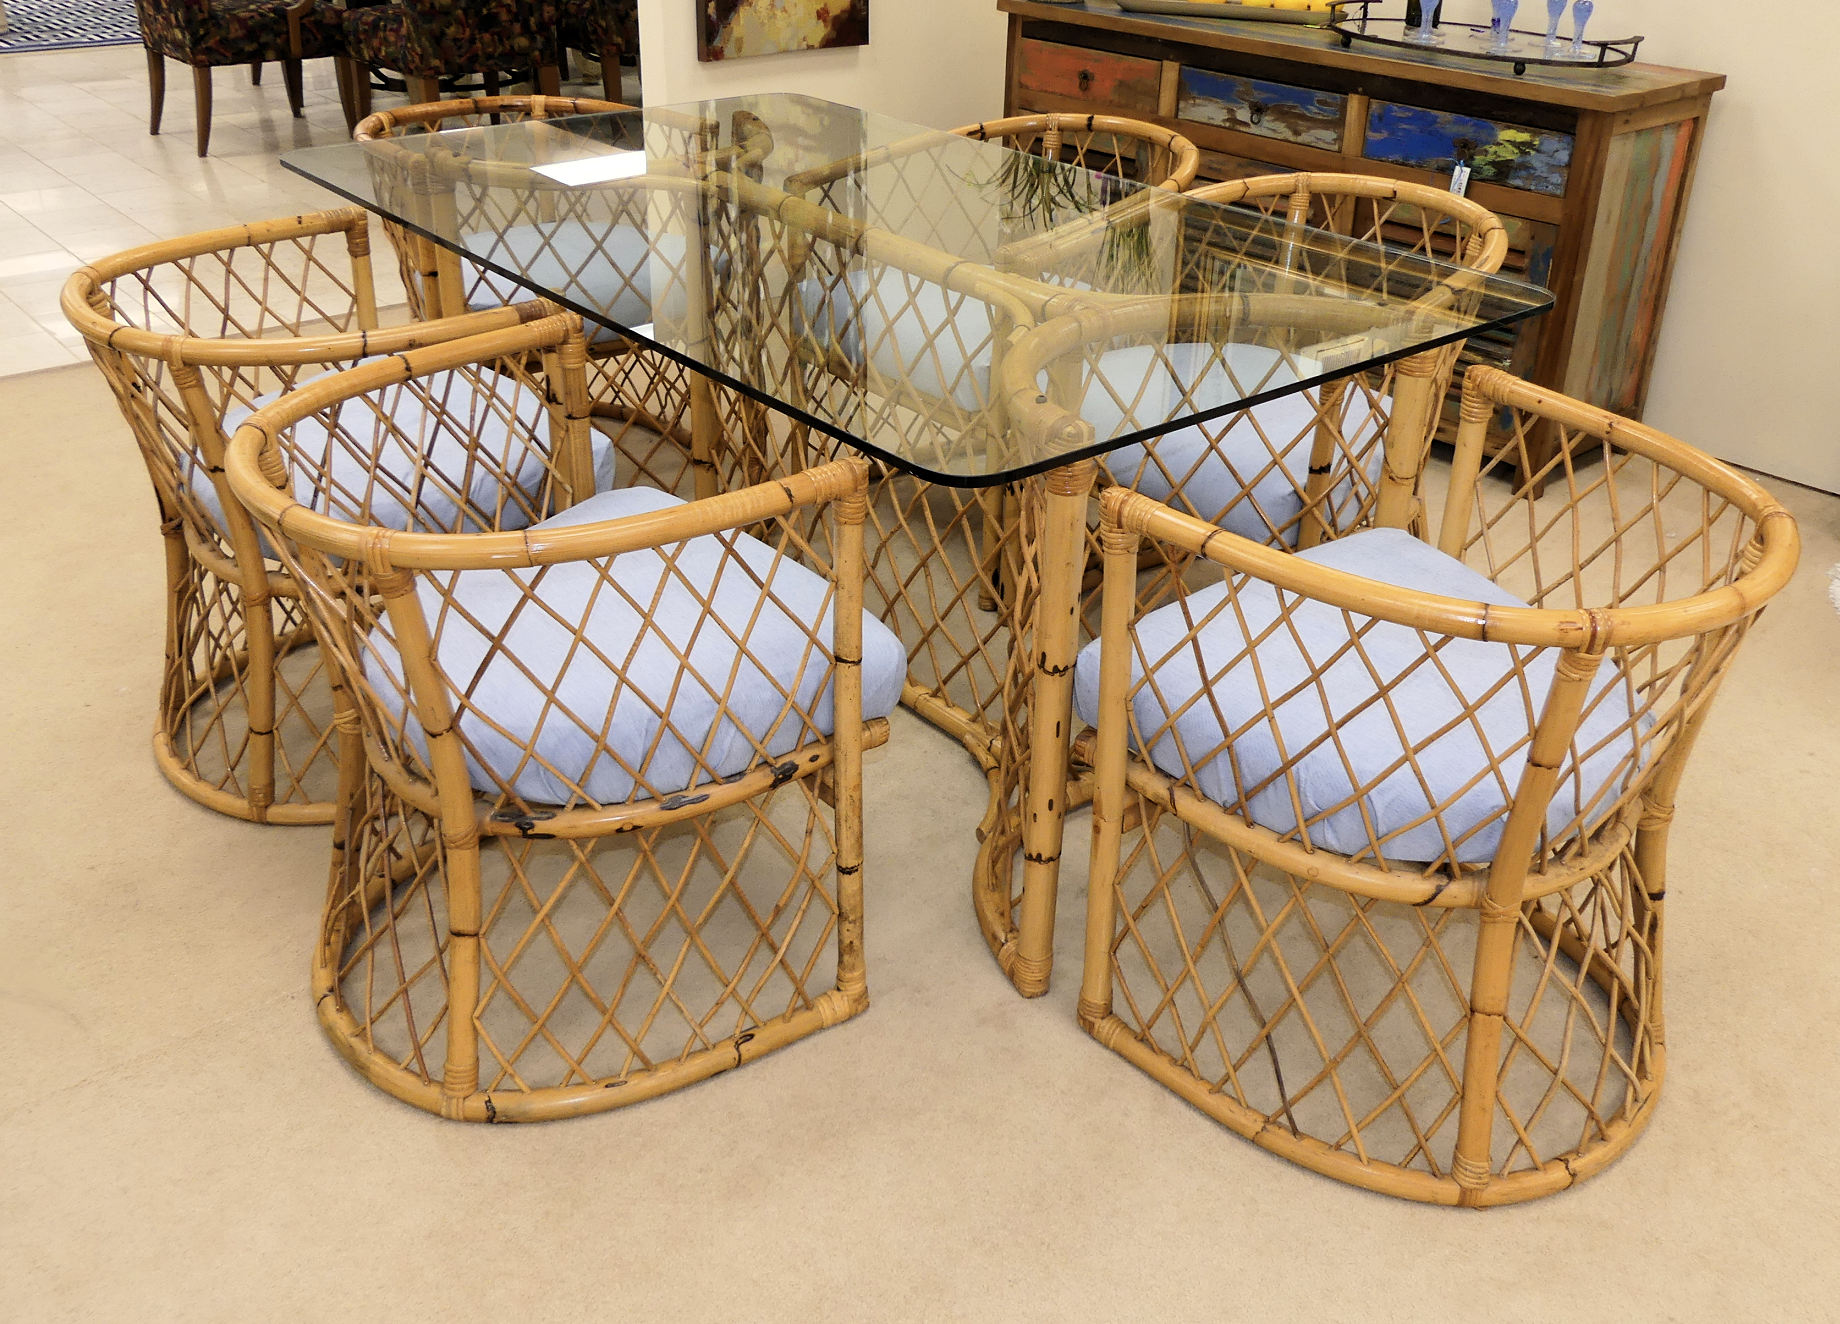 SOLD Vintage Rattan Dining Set